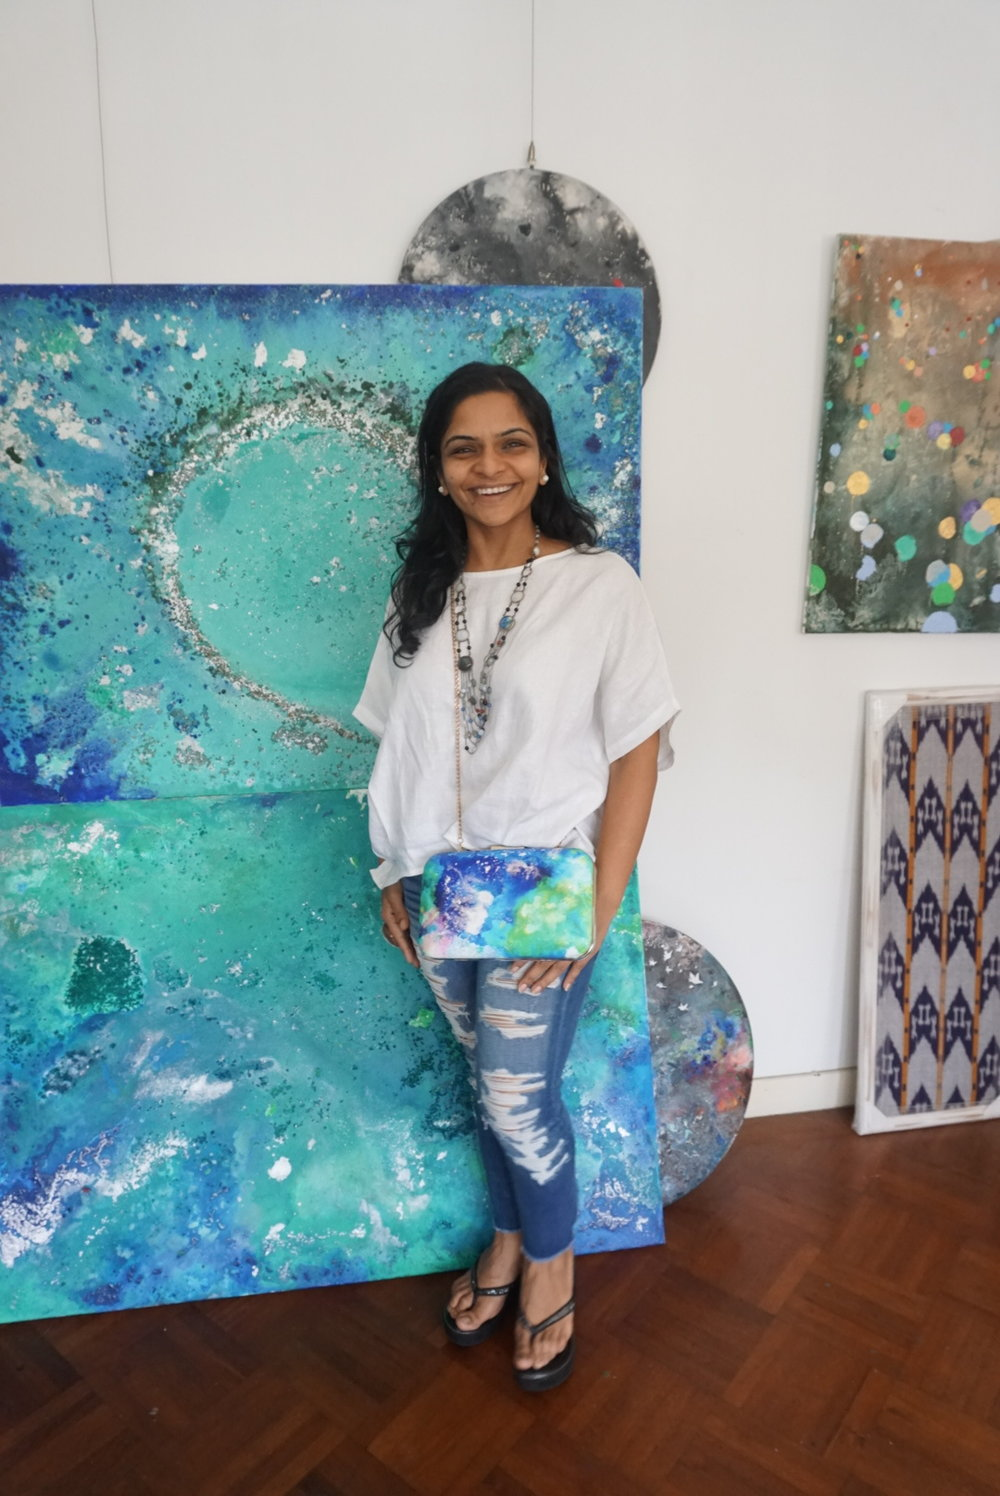 Shailly with her art and her handbag - we love these colours inspired by the ocean!